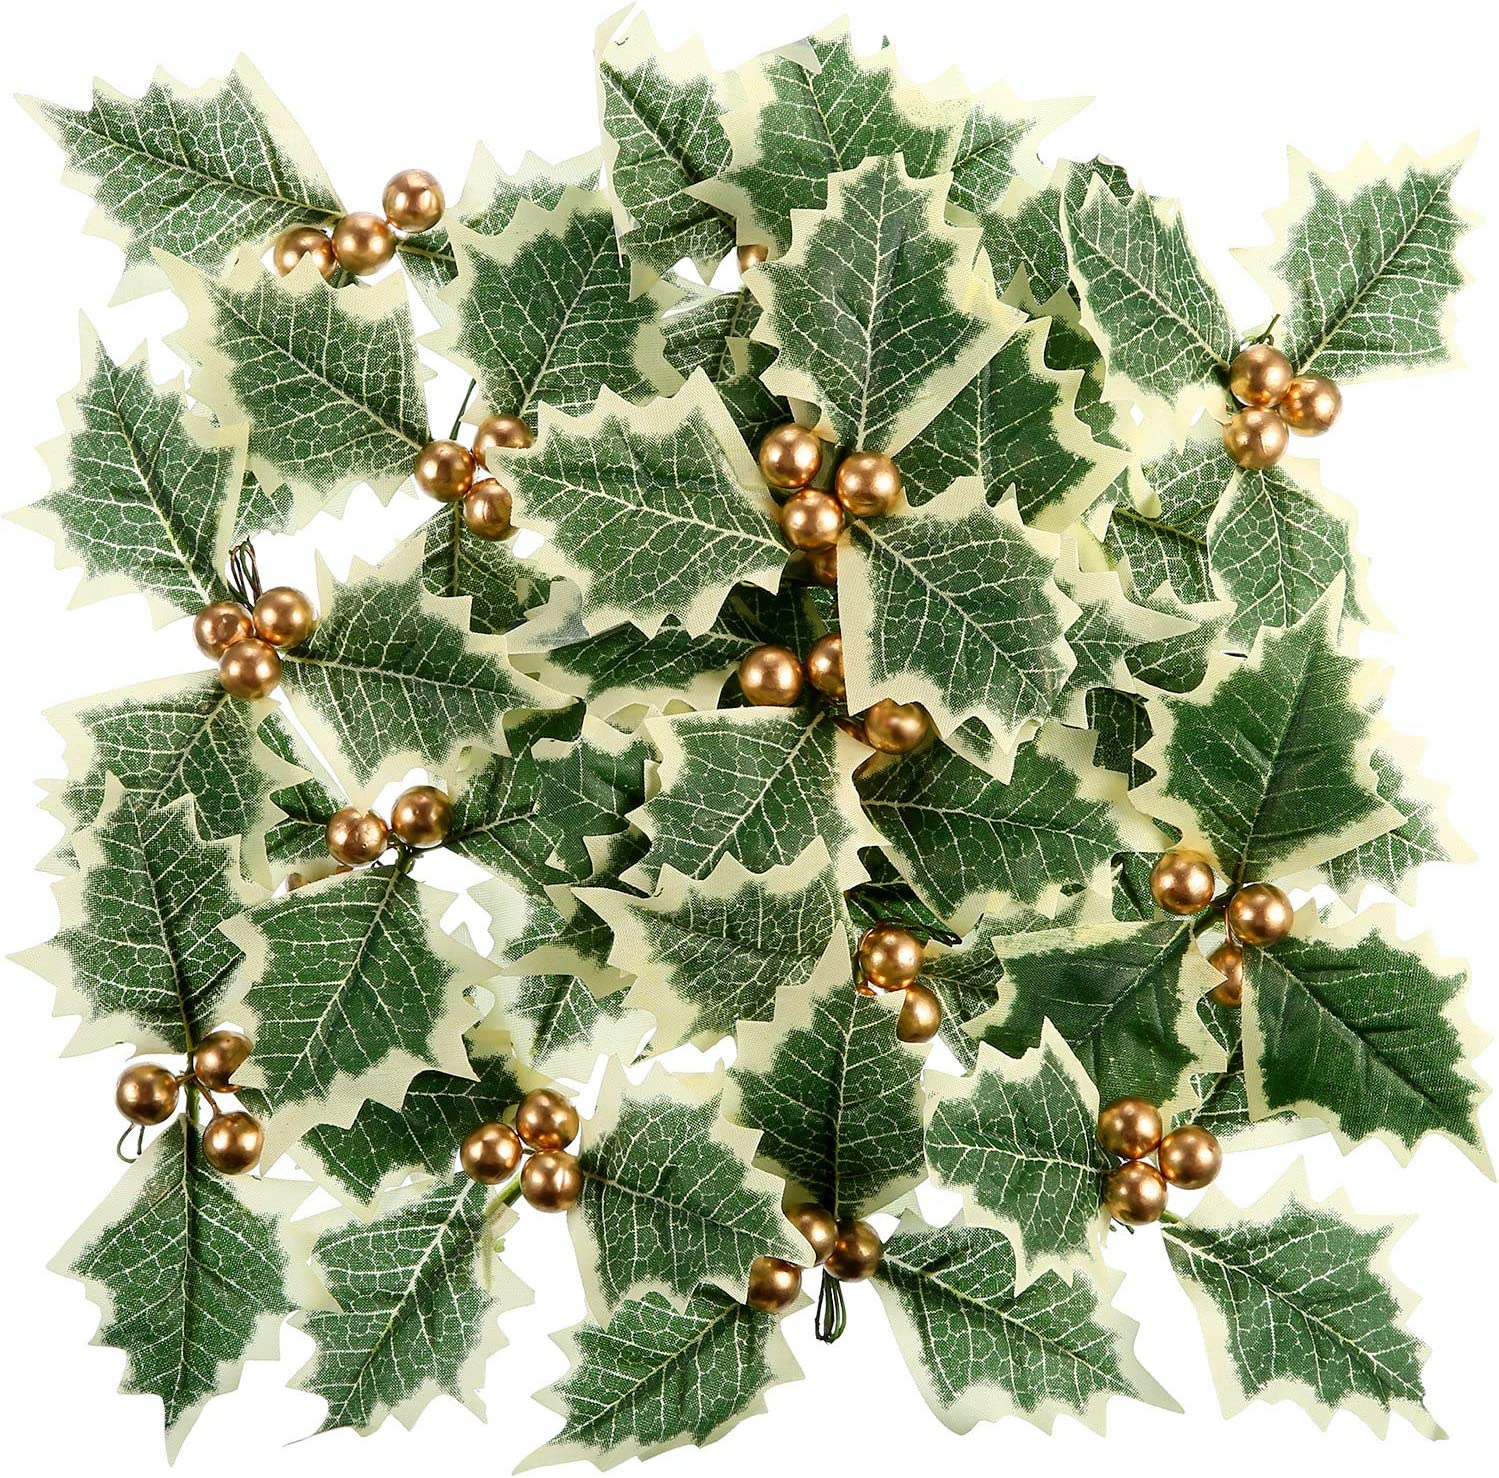 Pangda 30 Pieces Artificial Holly Berry with Green Leaves for Christmas Wreath Arrangement Cake Toppers Craft Wedding Party Decorations (Gold)